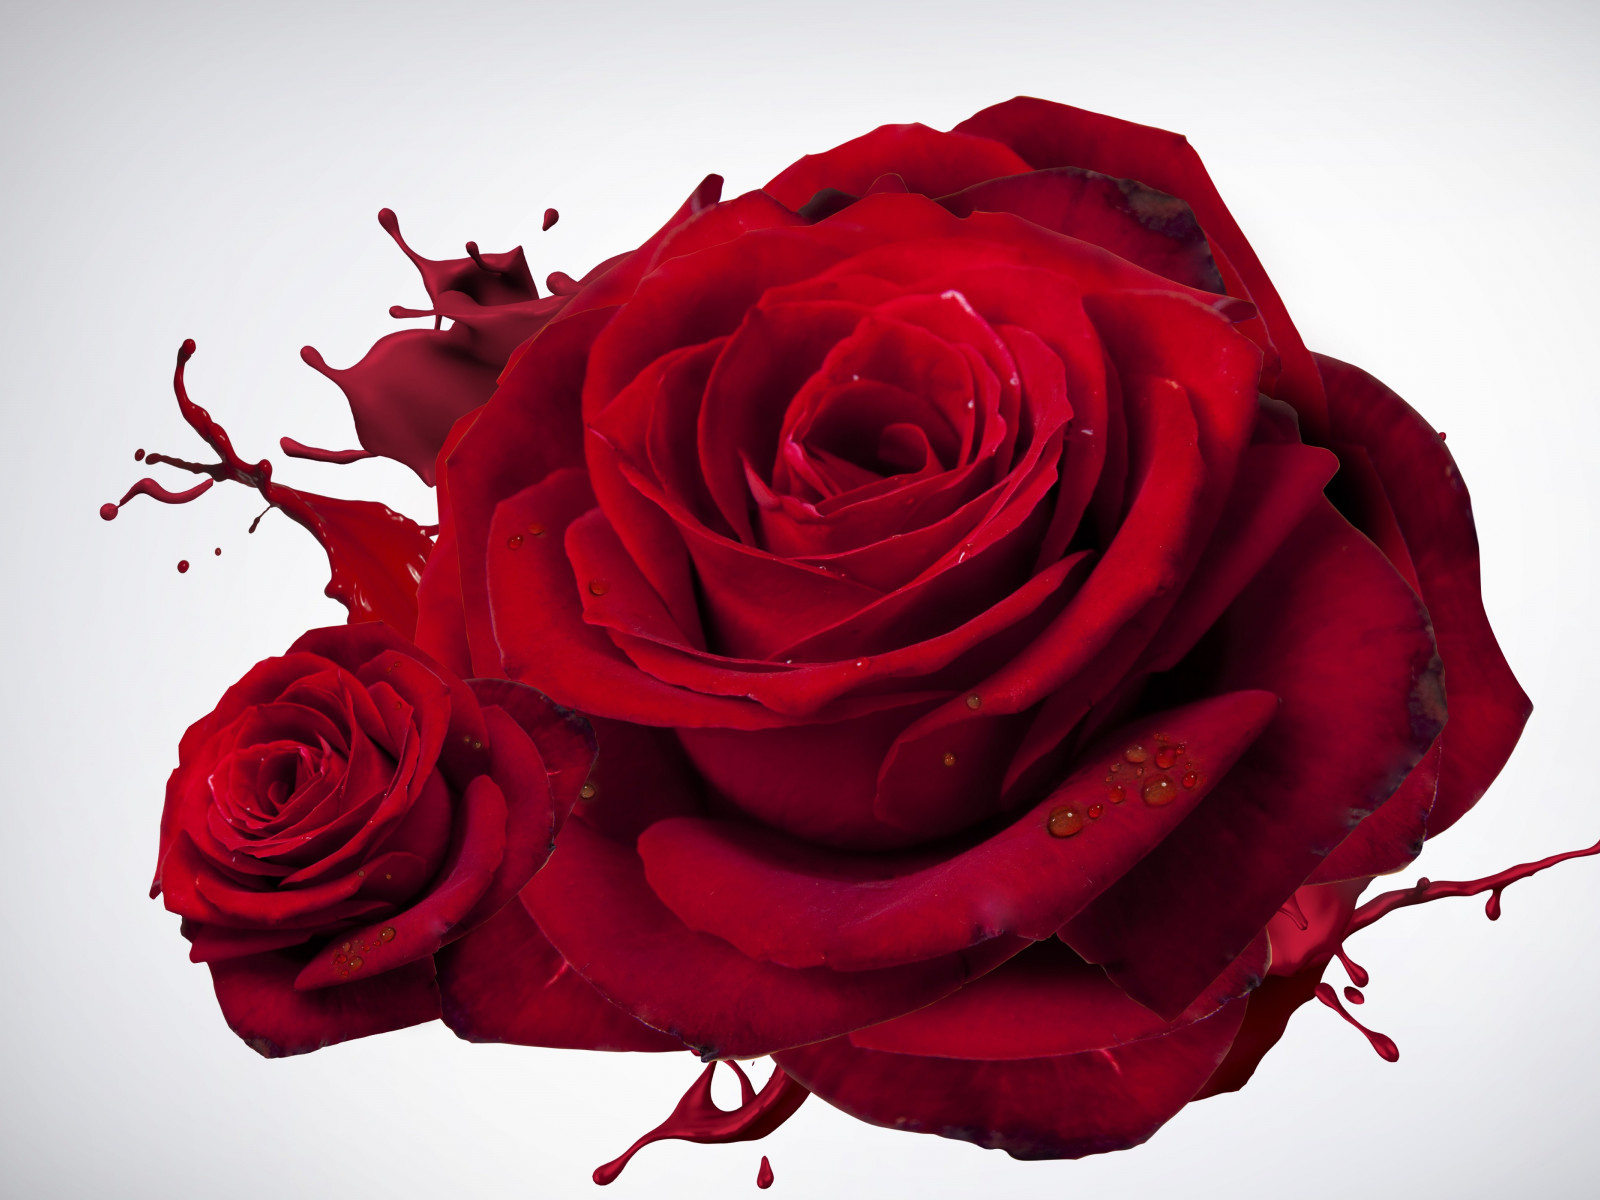 The most beautiful red roses | 1600x1200 wallpaper